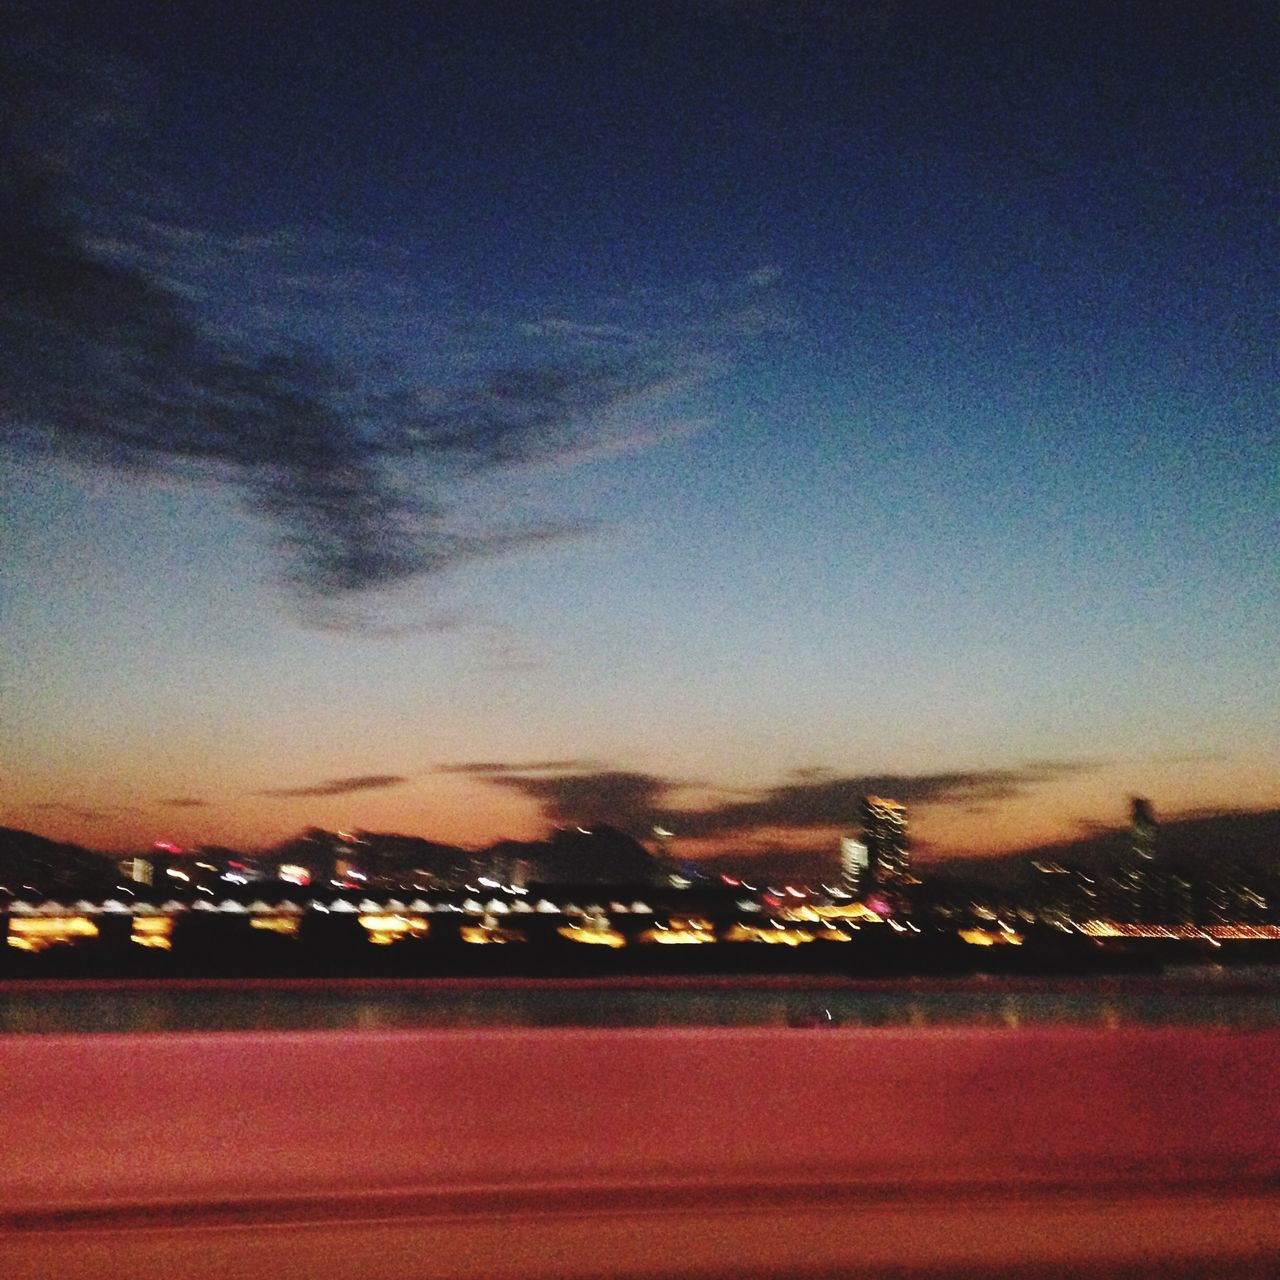 sunset, sky, night, dusk, illuminated, no people, outdoors, motion, cloud - sky, nature, road, beauty in nature, city, architecture